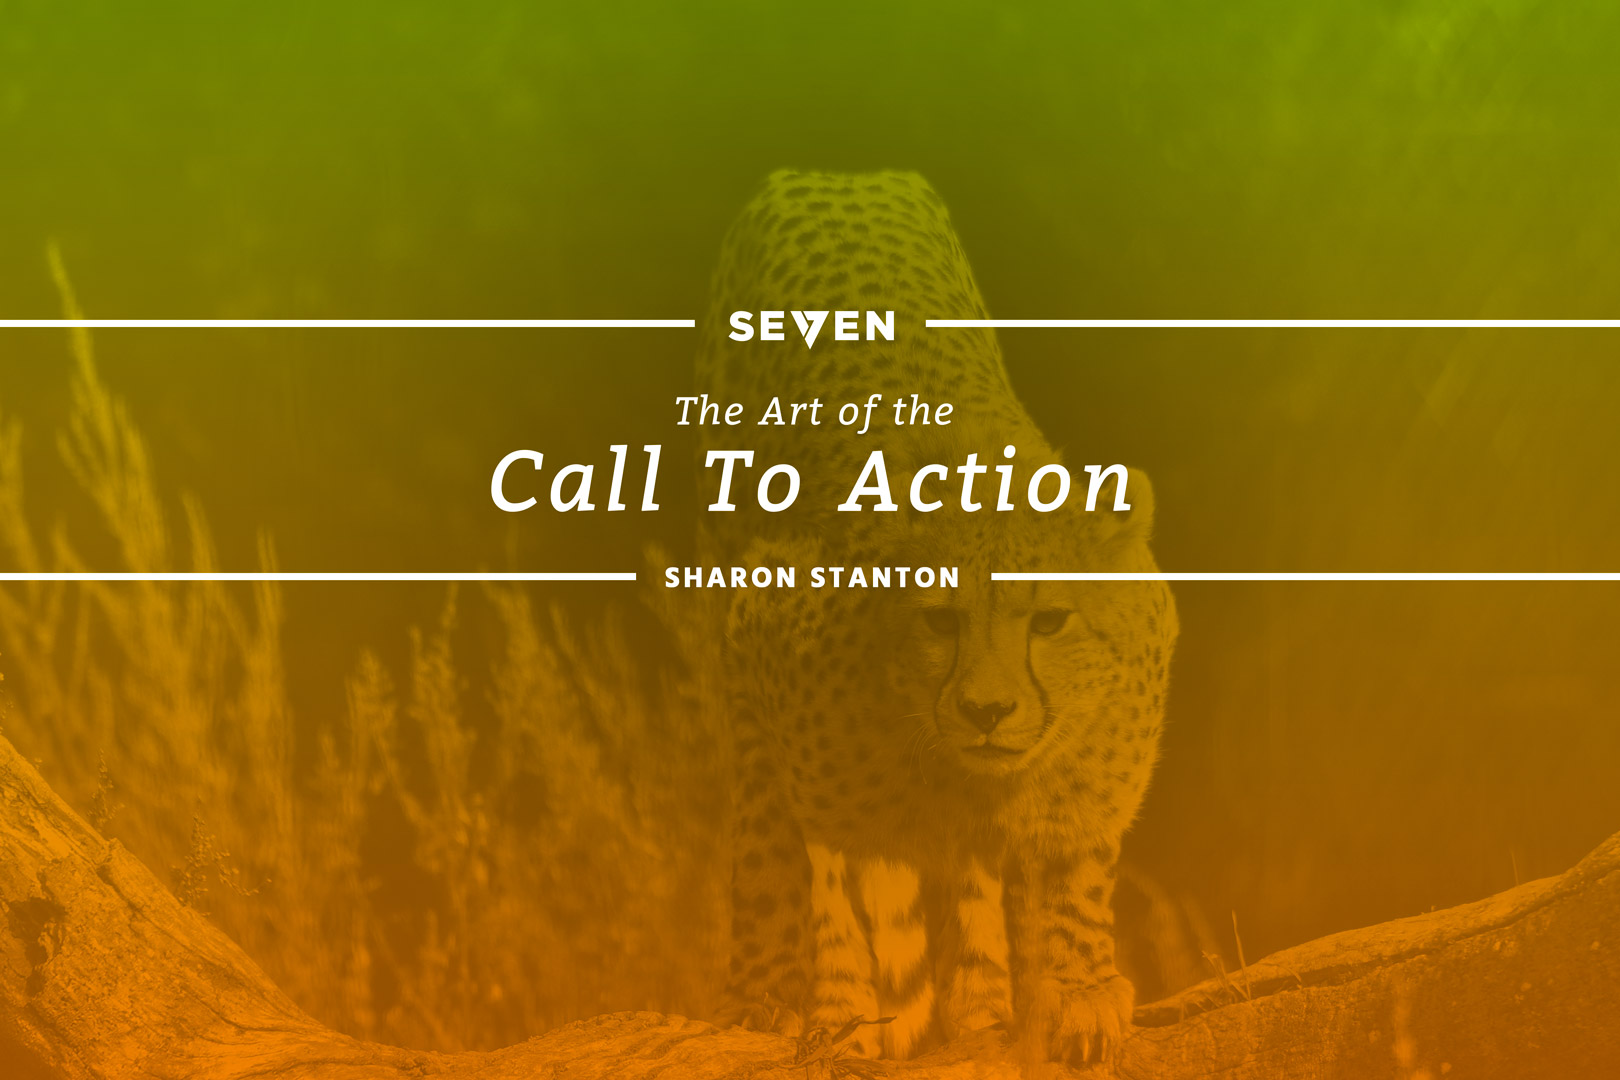 The Art of the Call to Action